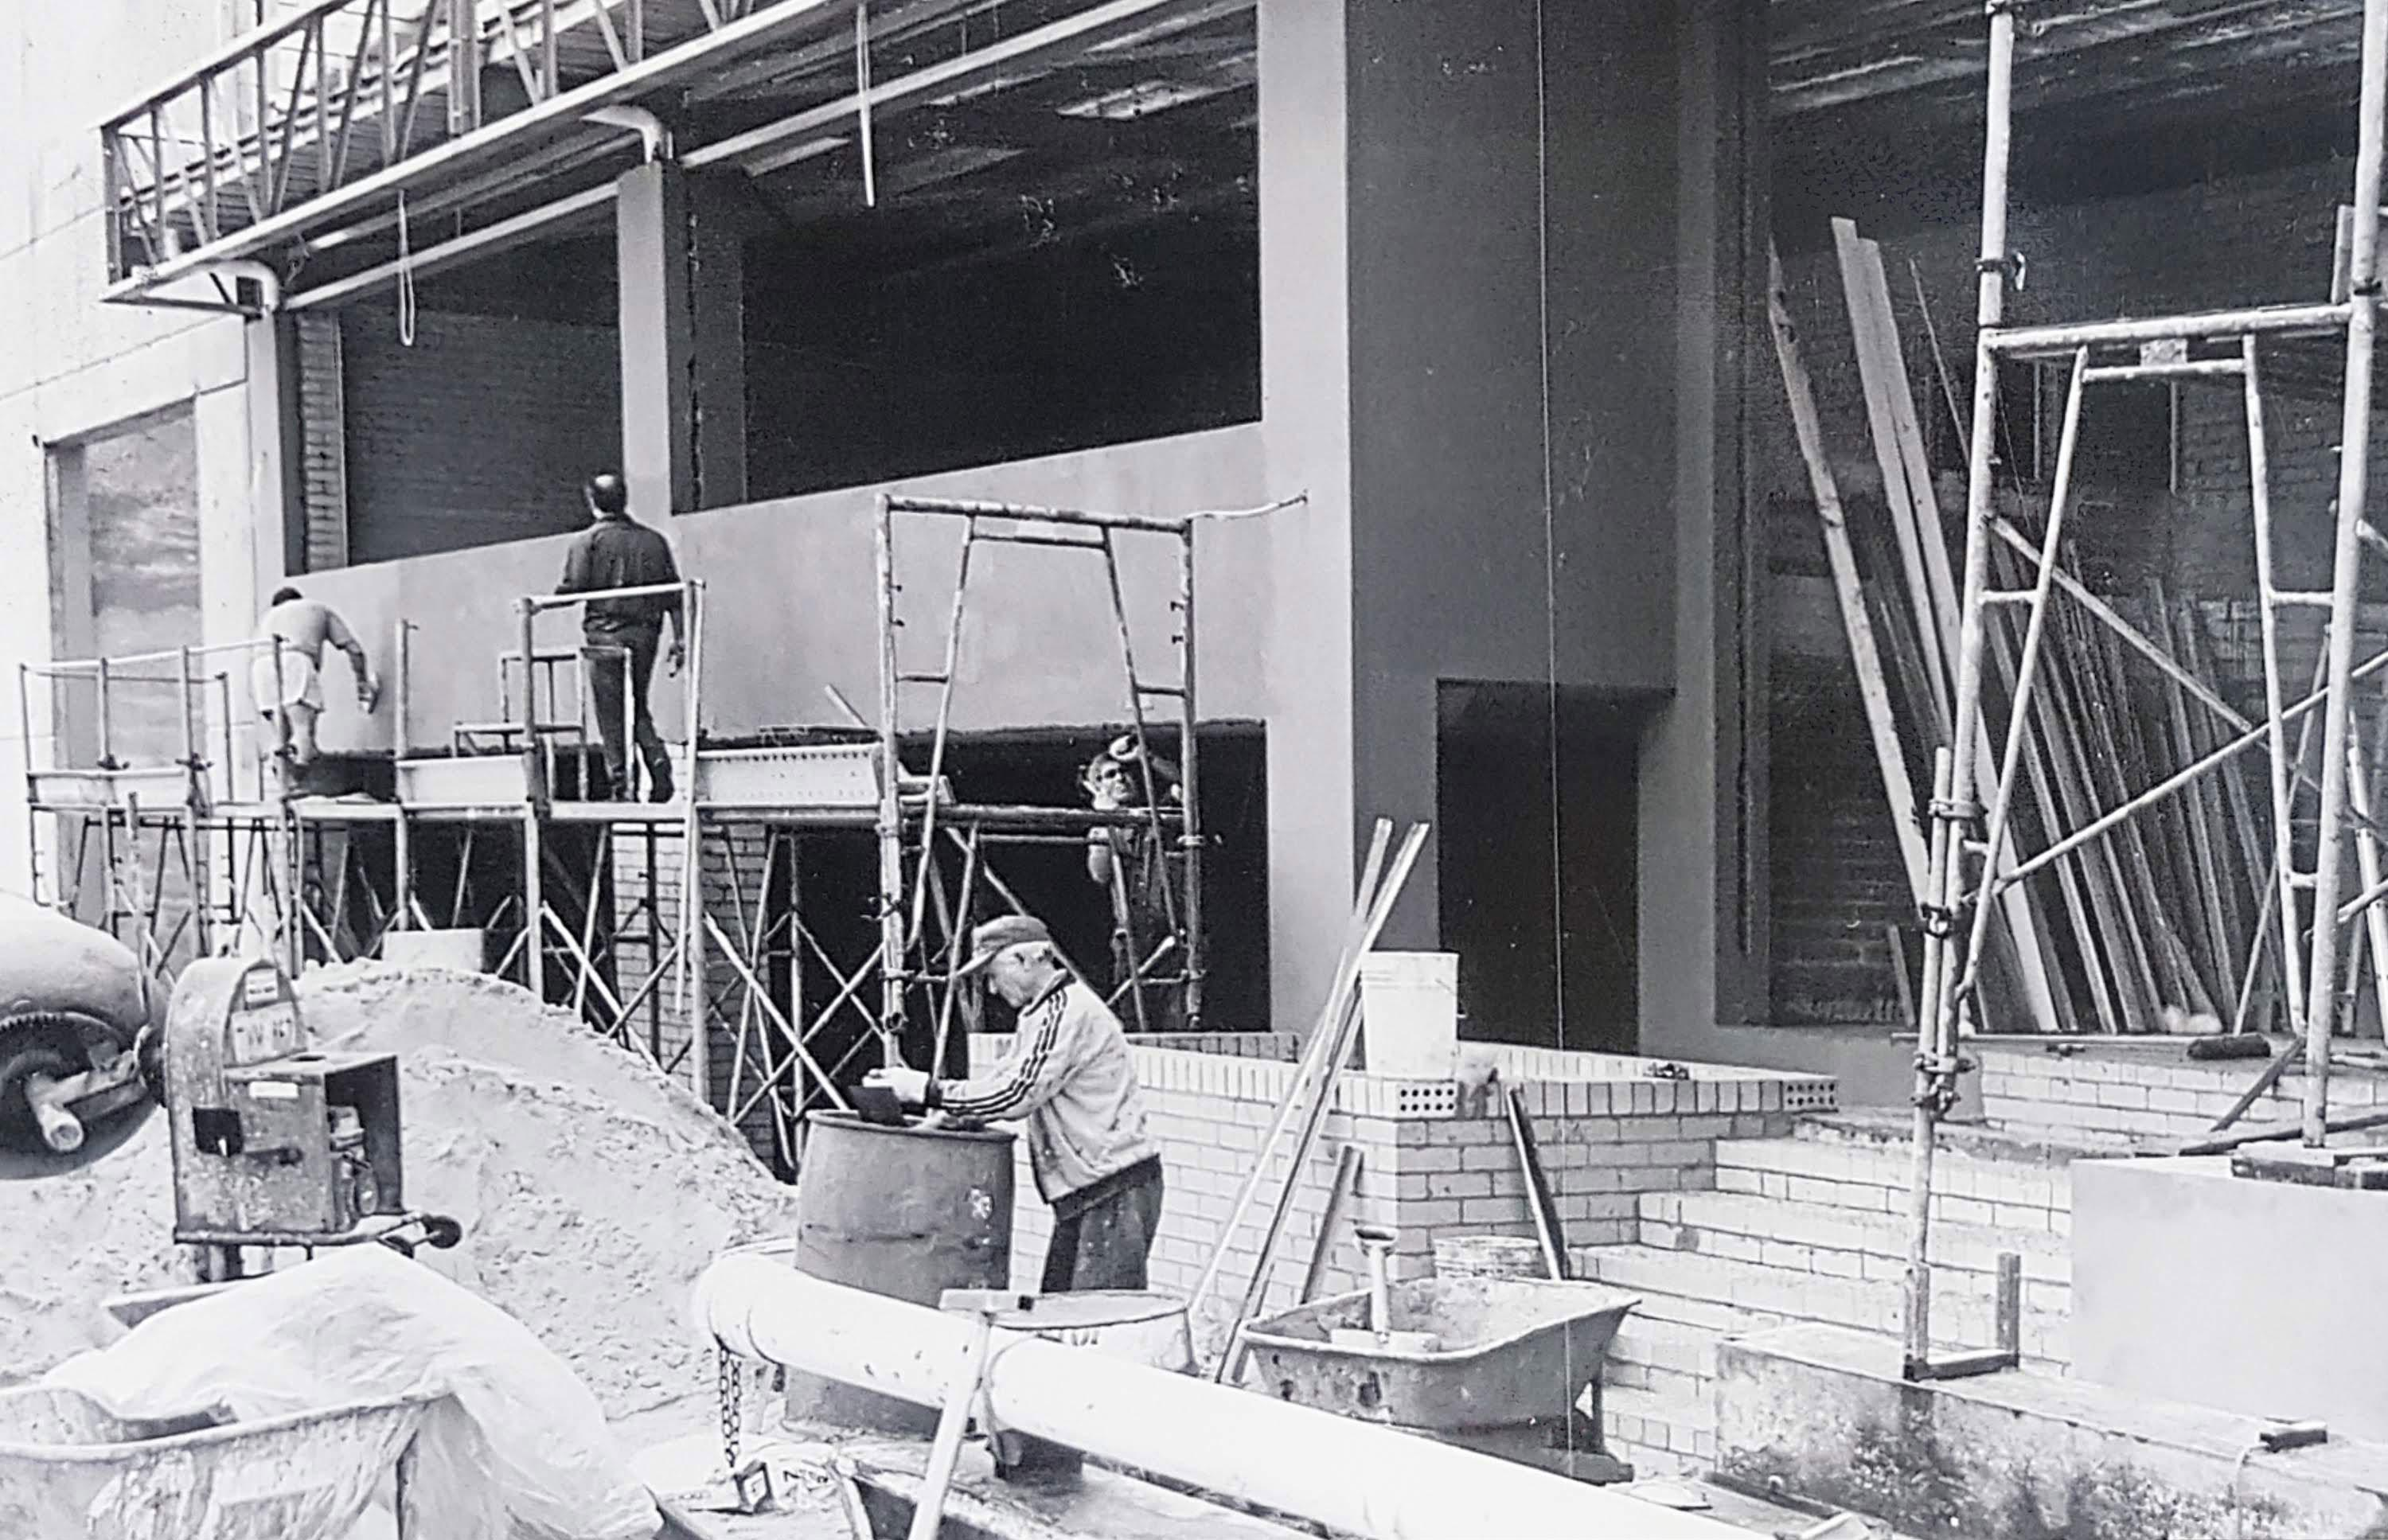 Contatore Engineering being built in 1990